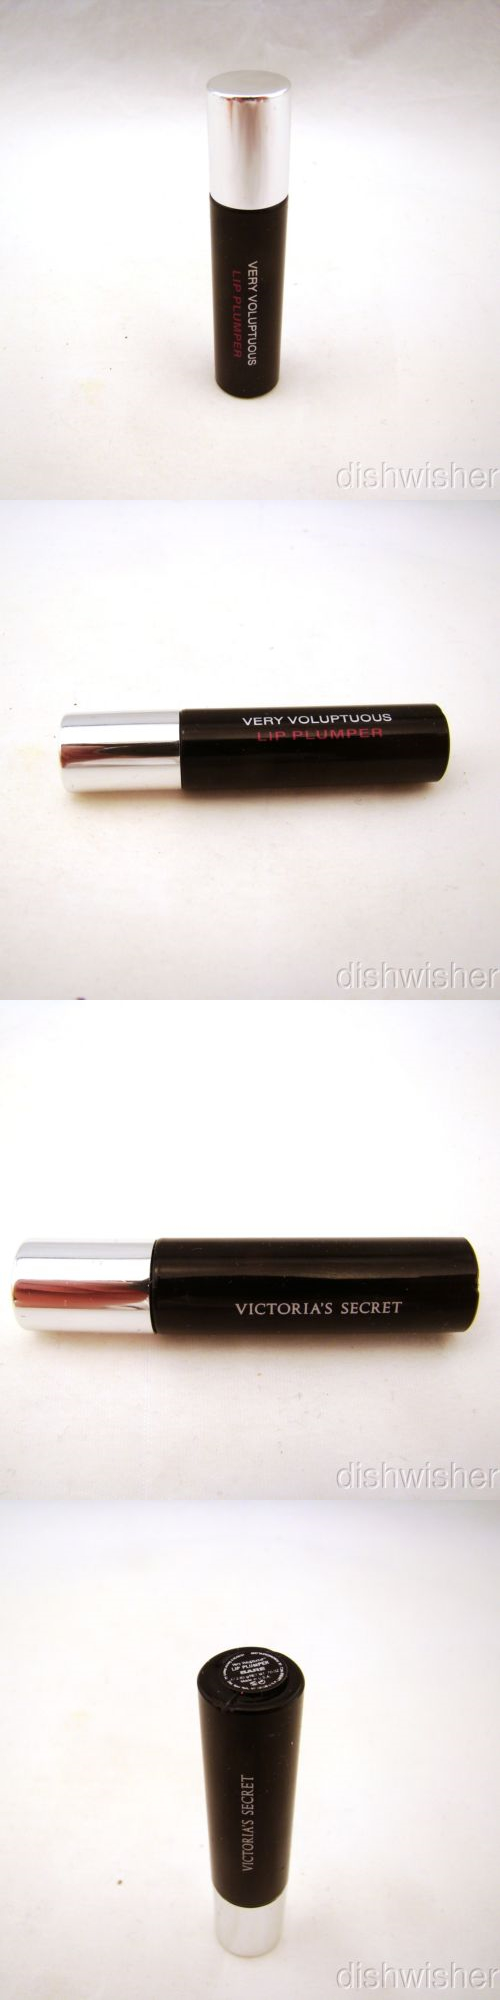 Beauty Amplifier Lip Plumper by Sephora Collection #10